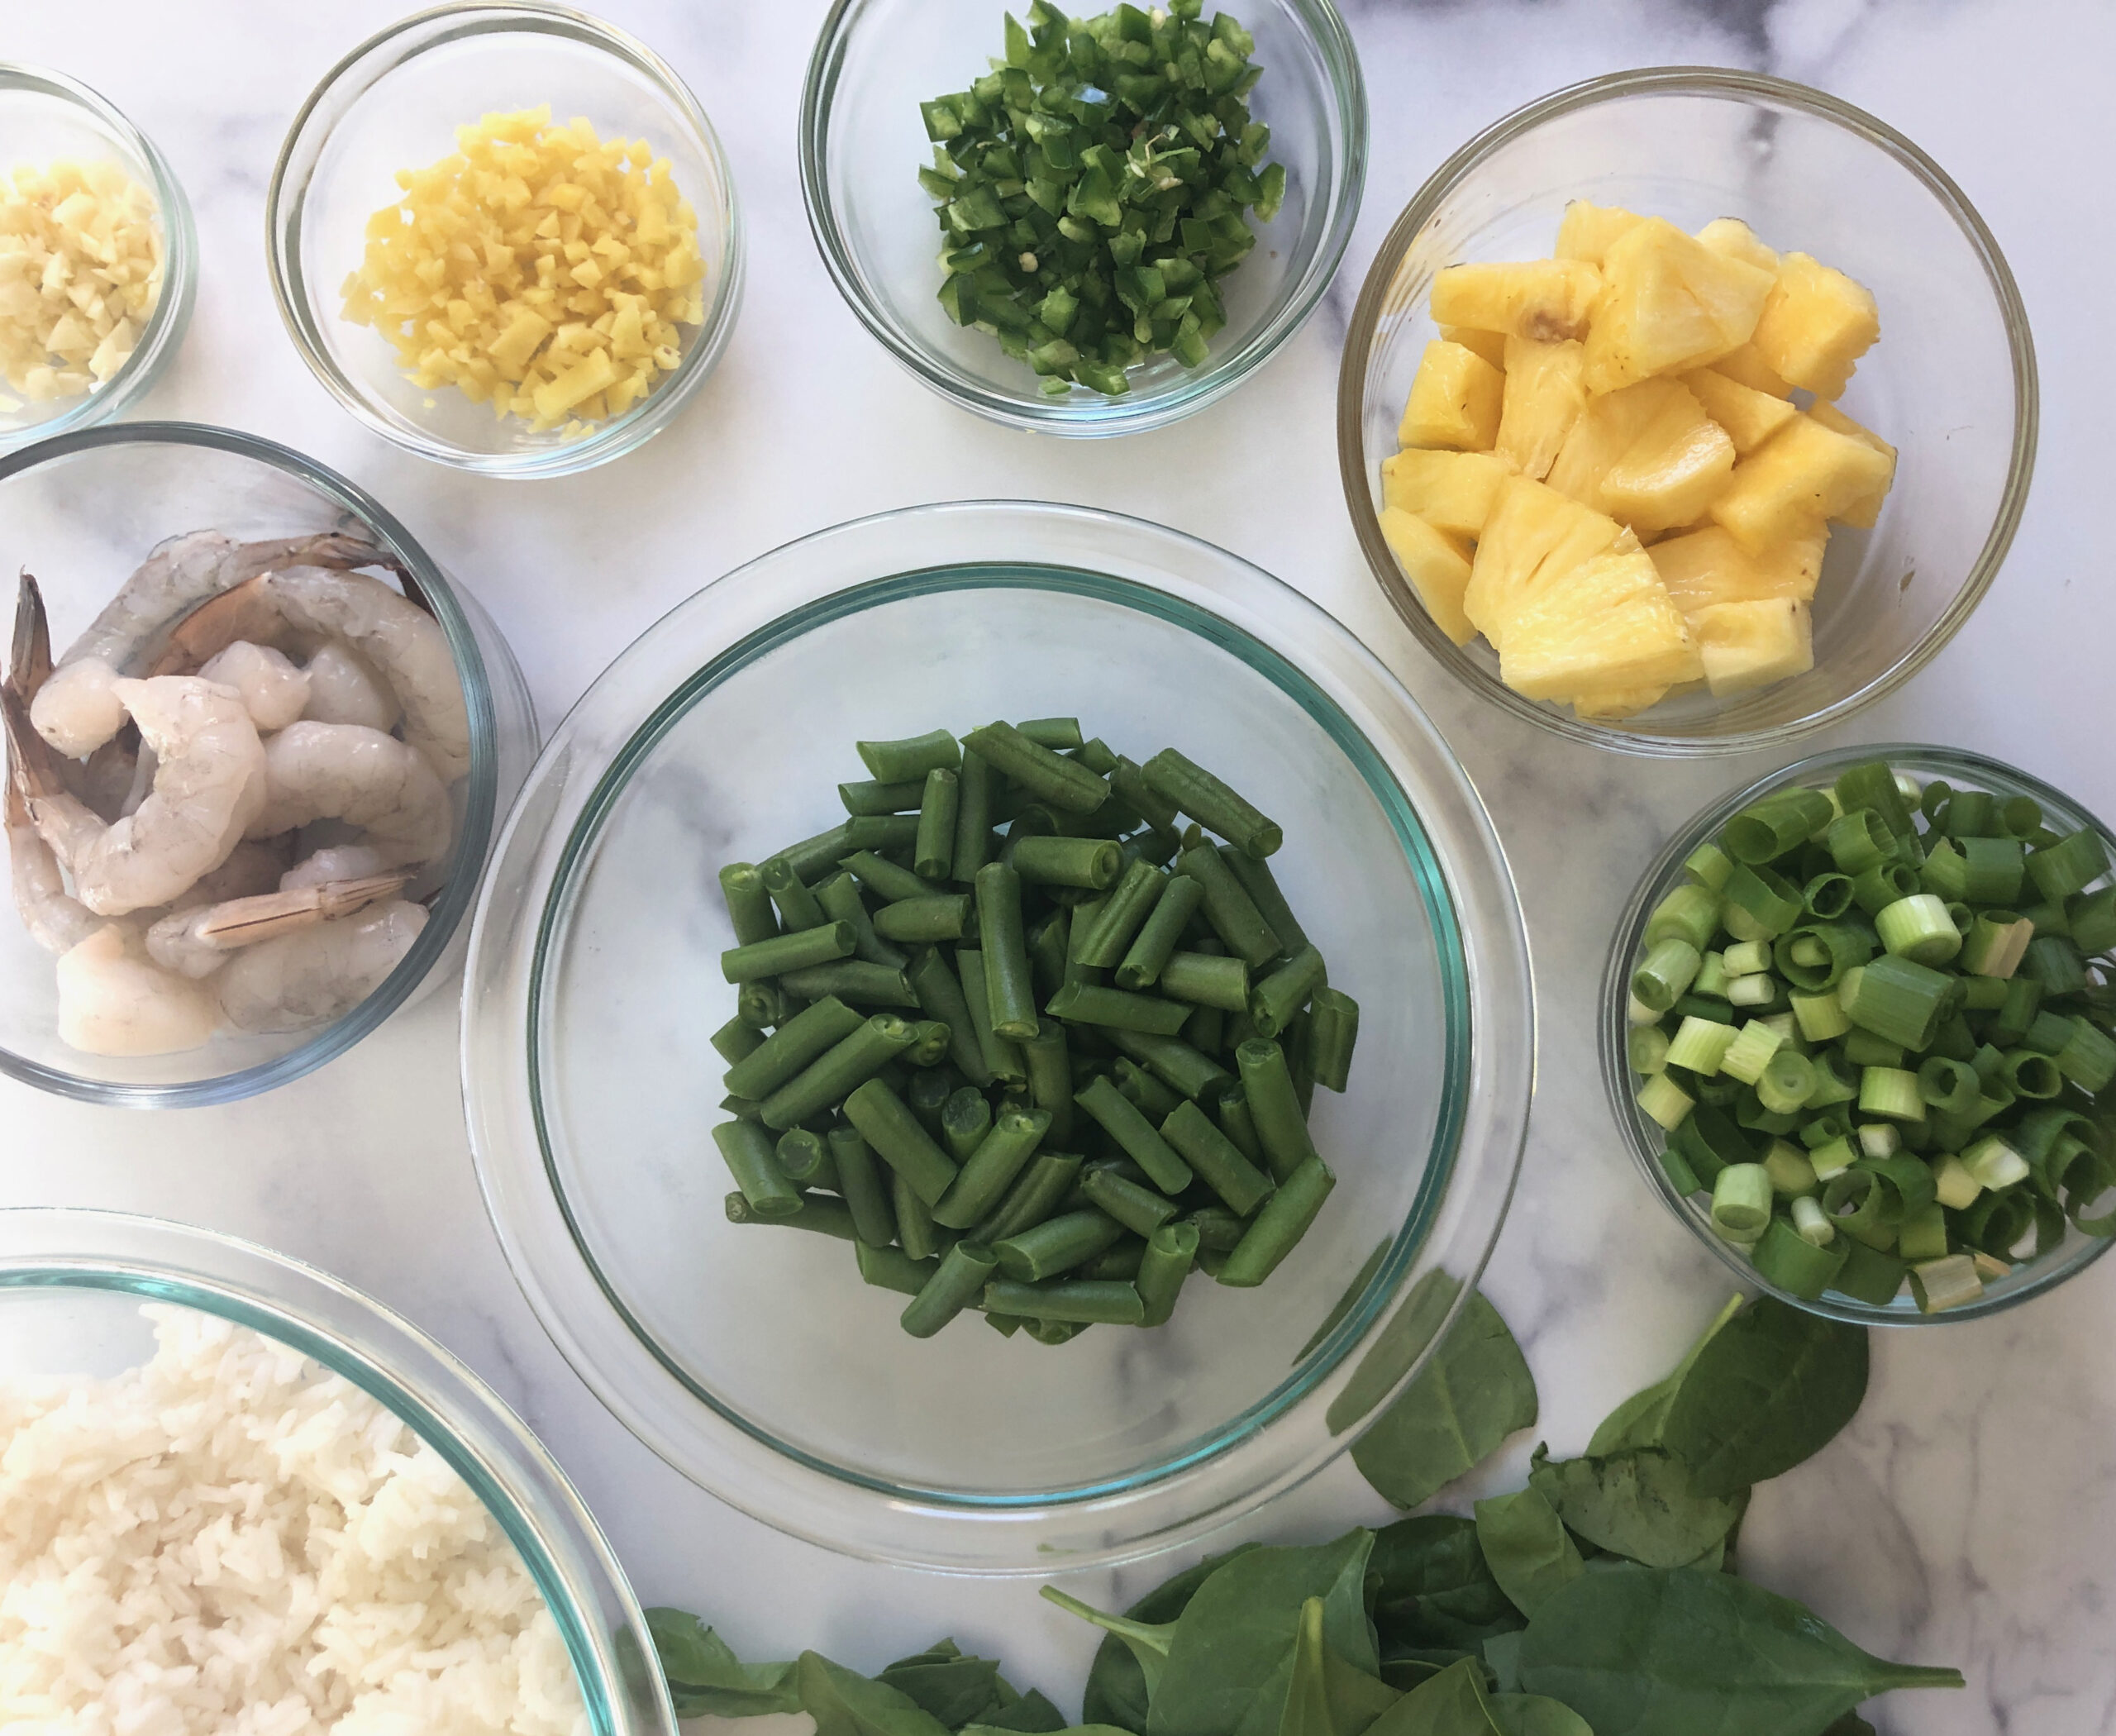 Ingredients for Pineapple & Shrimp Fried Rice